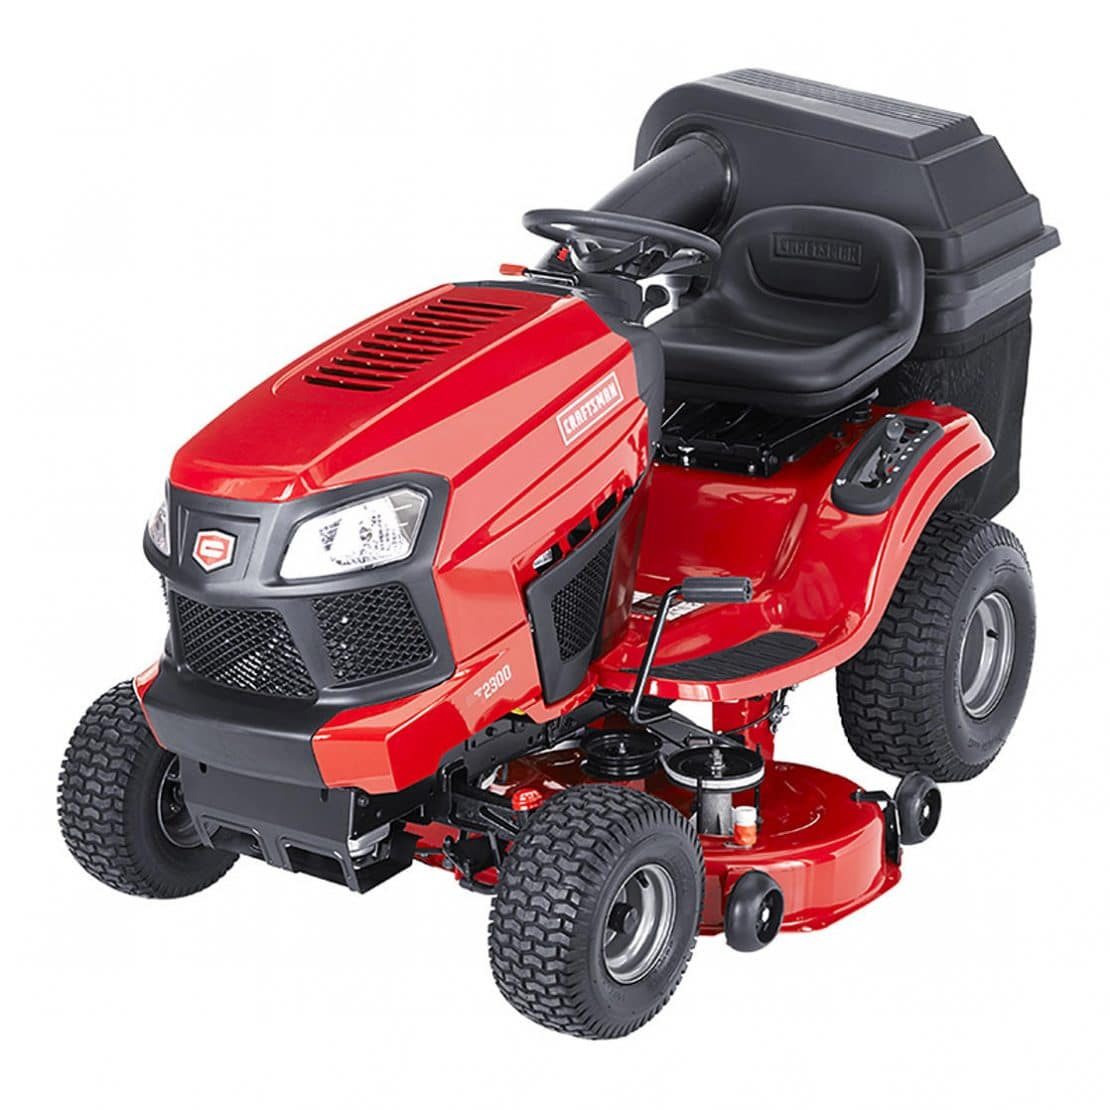 2016 Craftsman Yard Tractor Line Up One Now With Power